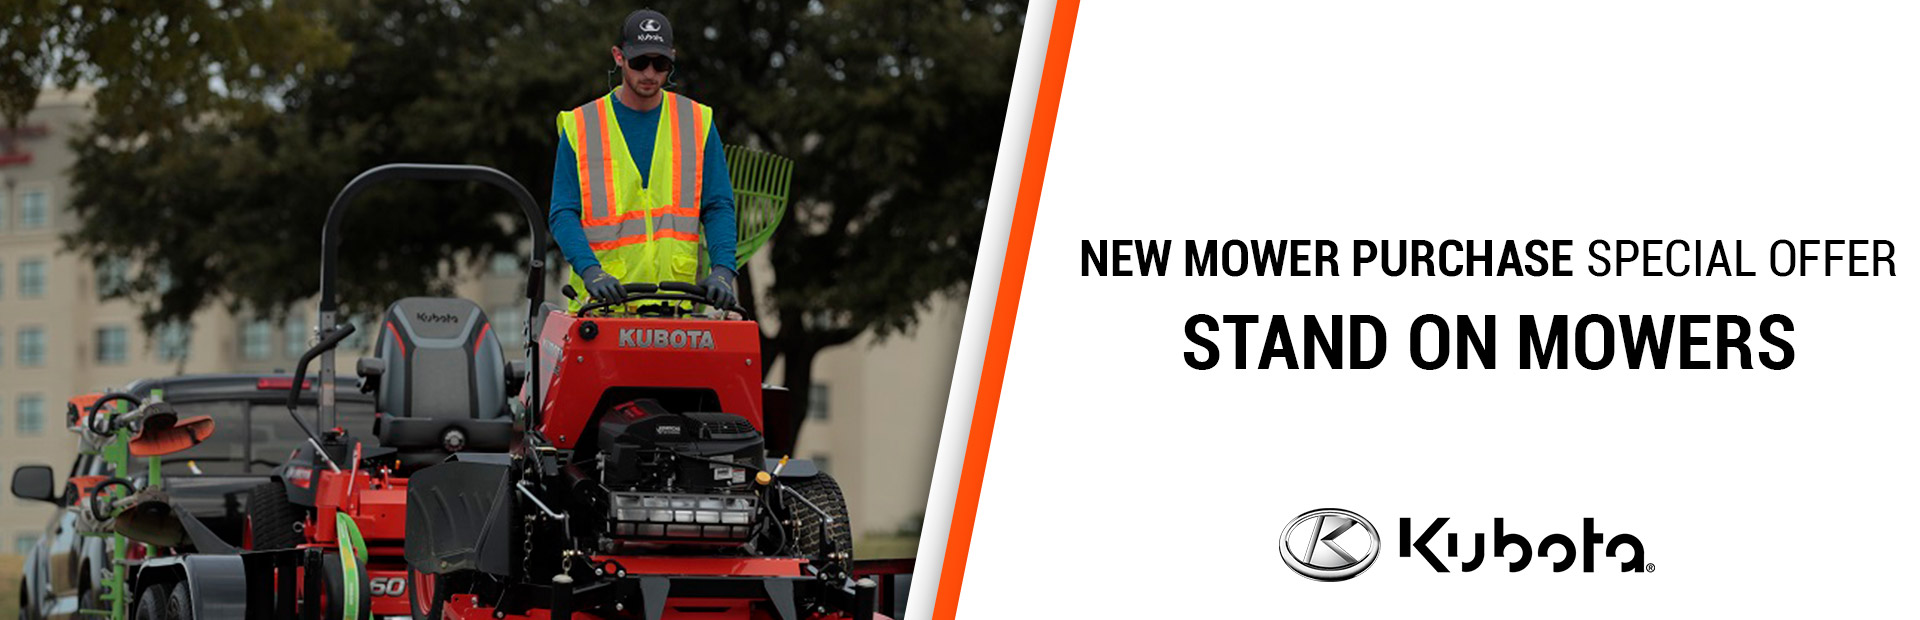 Kubota - NEW MOWER PURCHASE SPECIAL OFFERS-STAND ON MOWERS Tyler